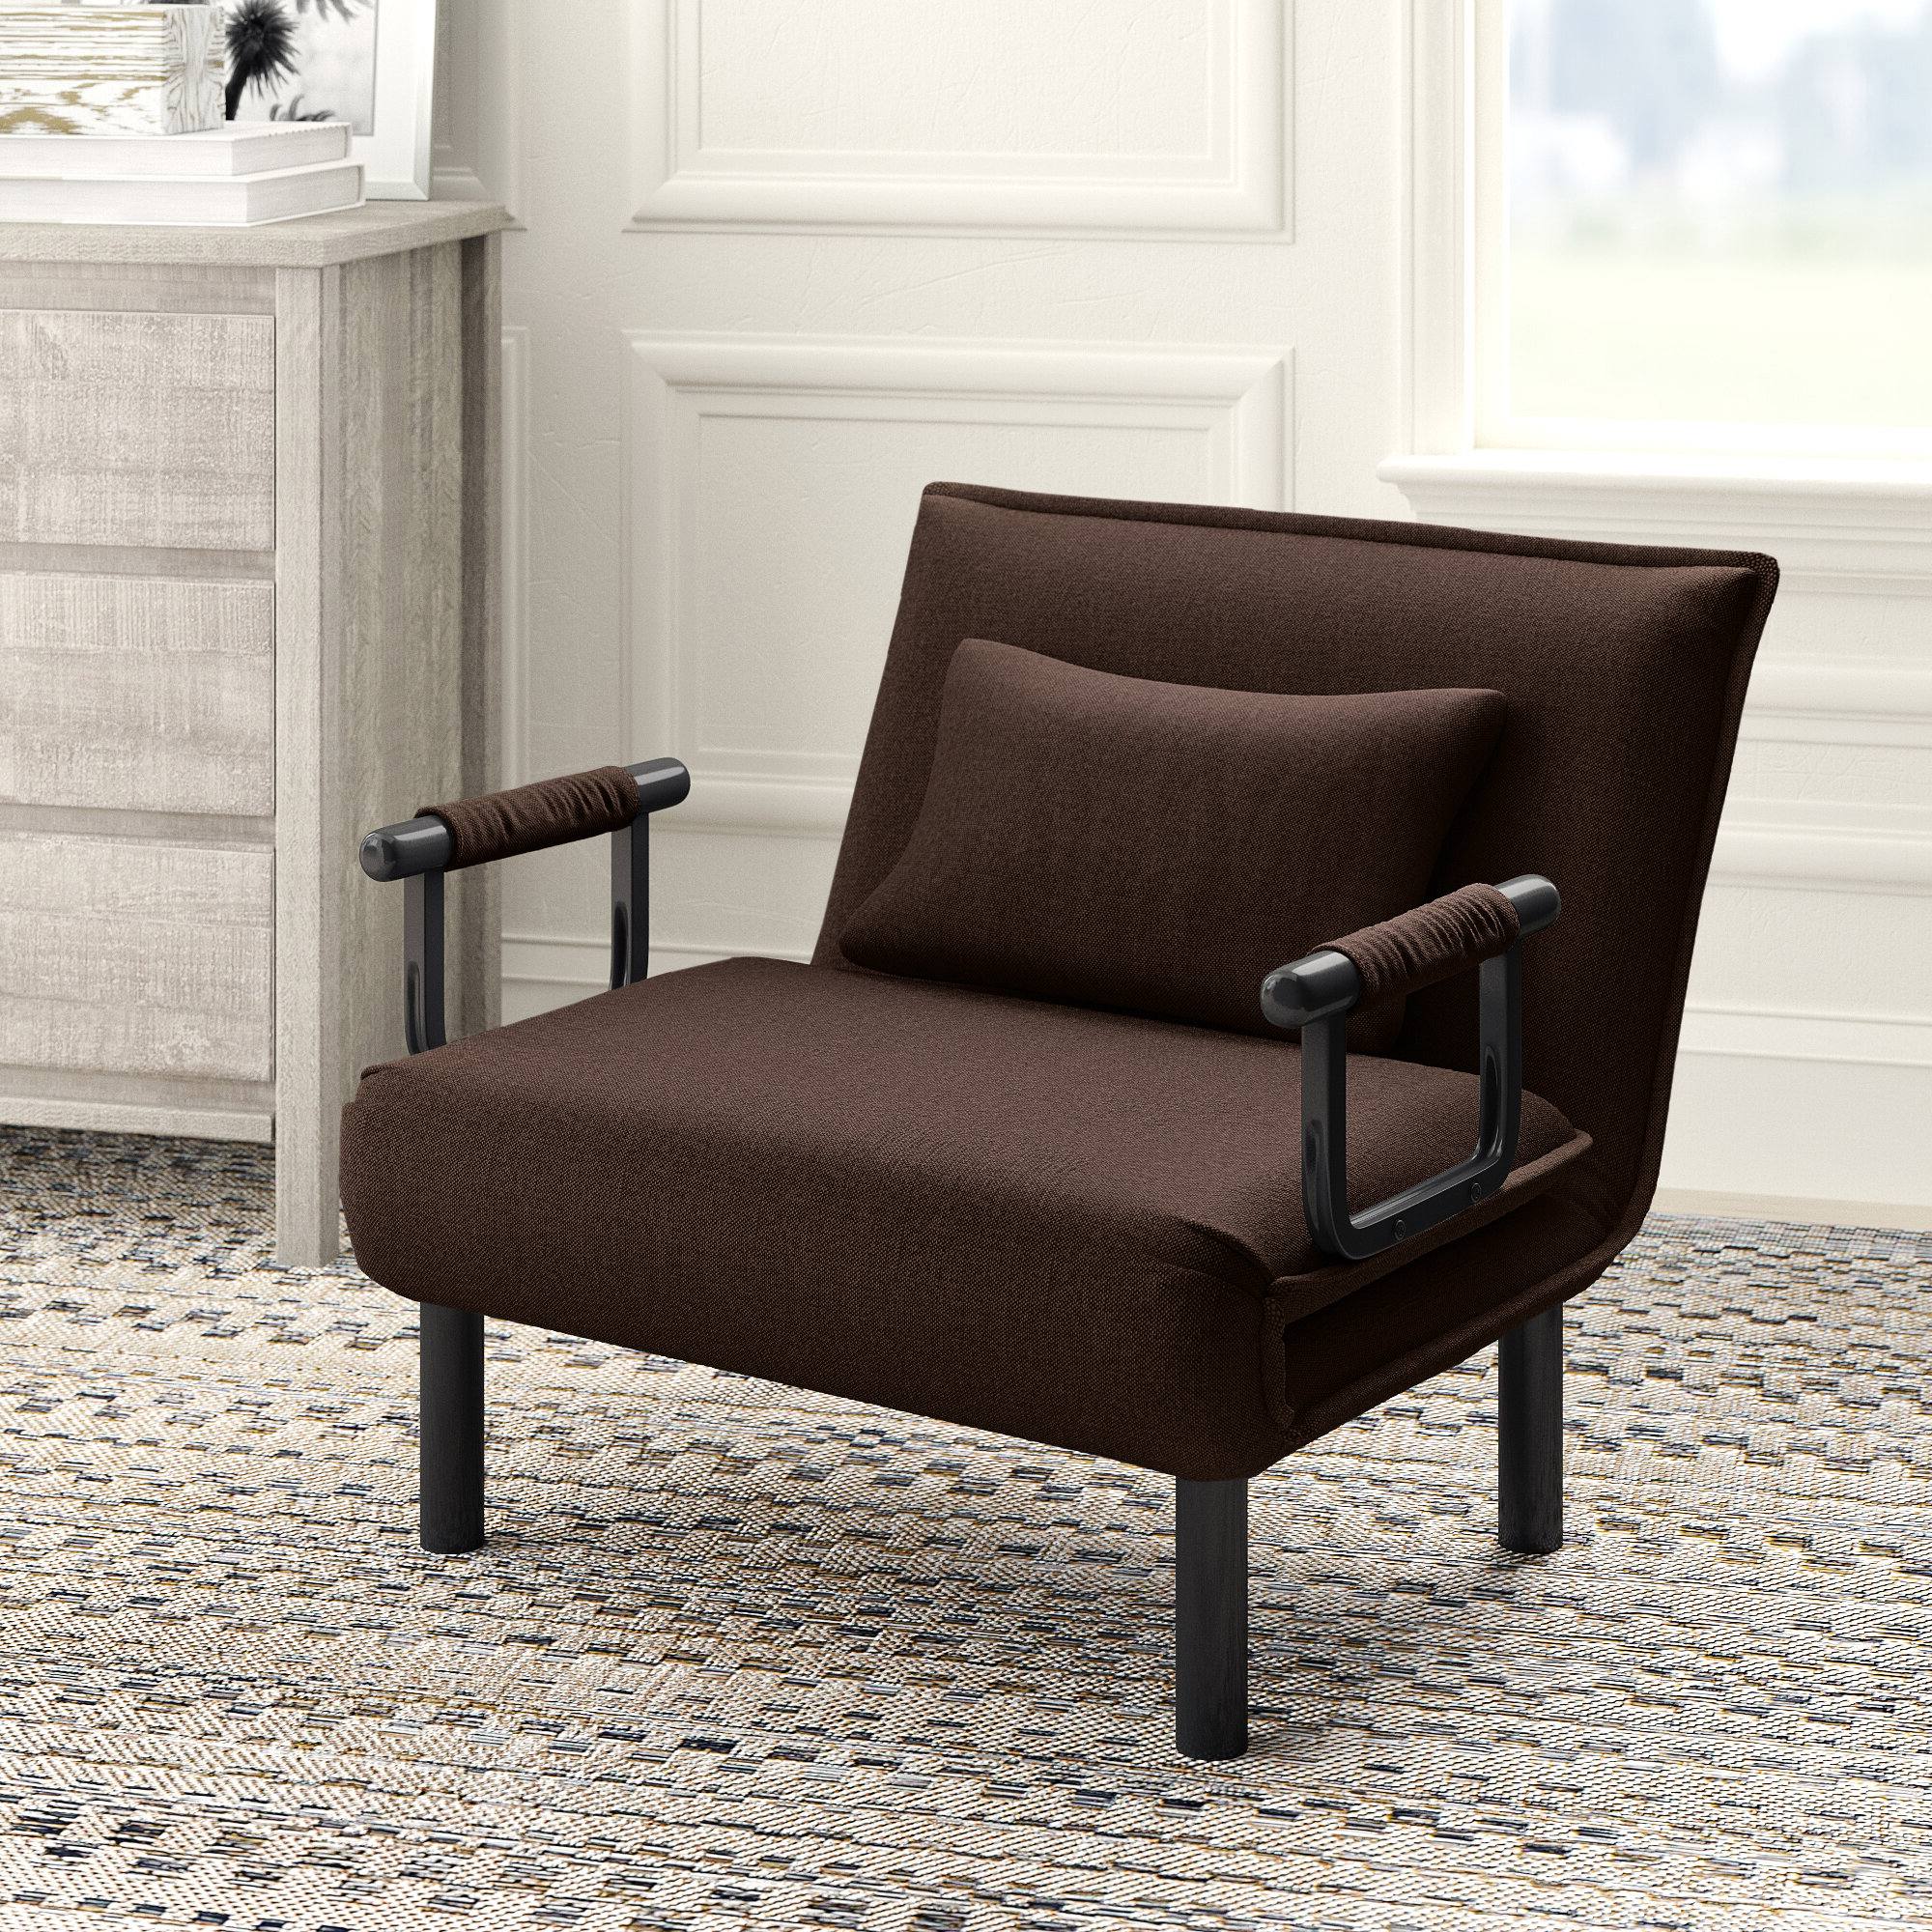 Onderdonk Faux Leather Convertible Chairs Pertaining To 2019 Springdale Convertible Chair (View 12 of 20)